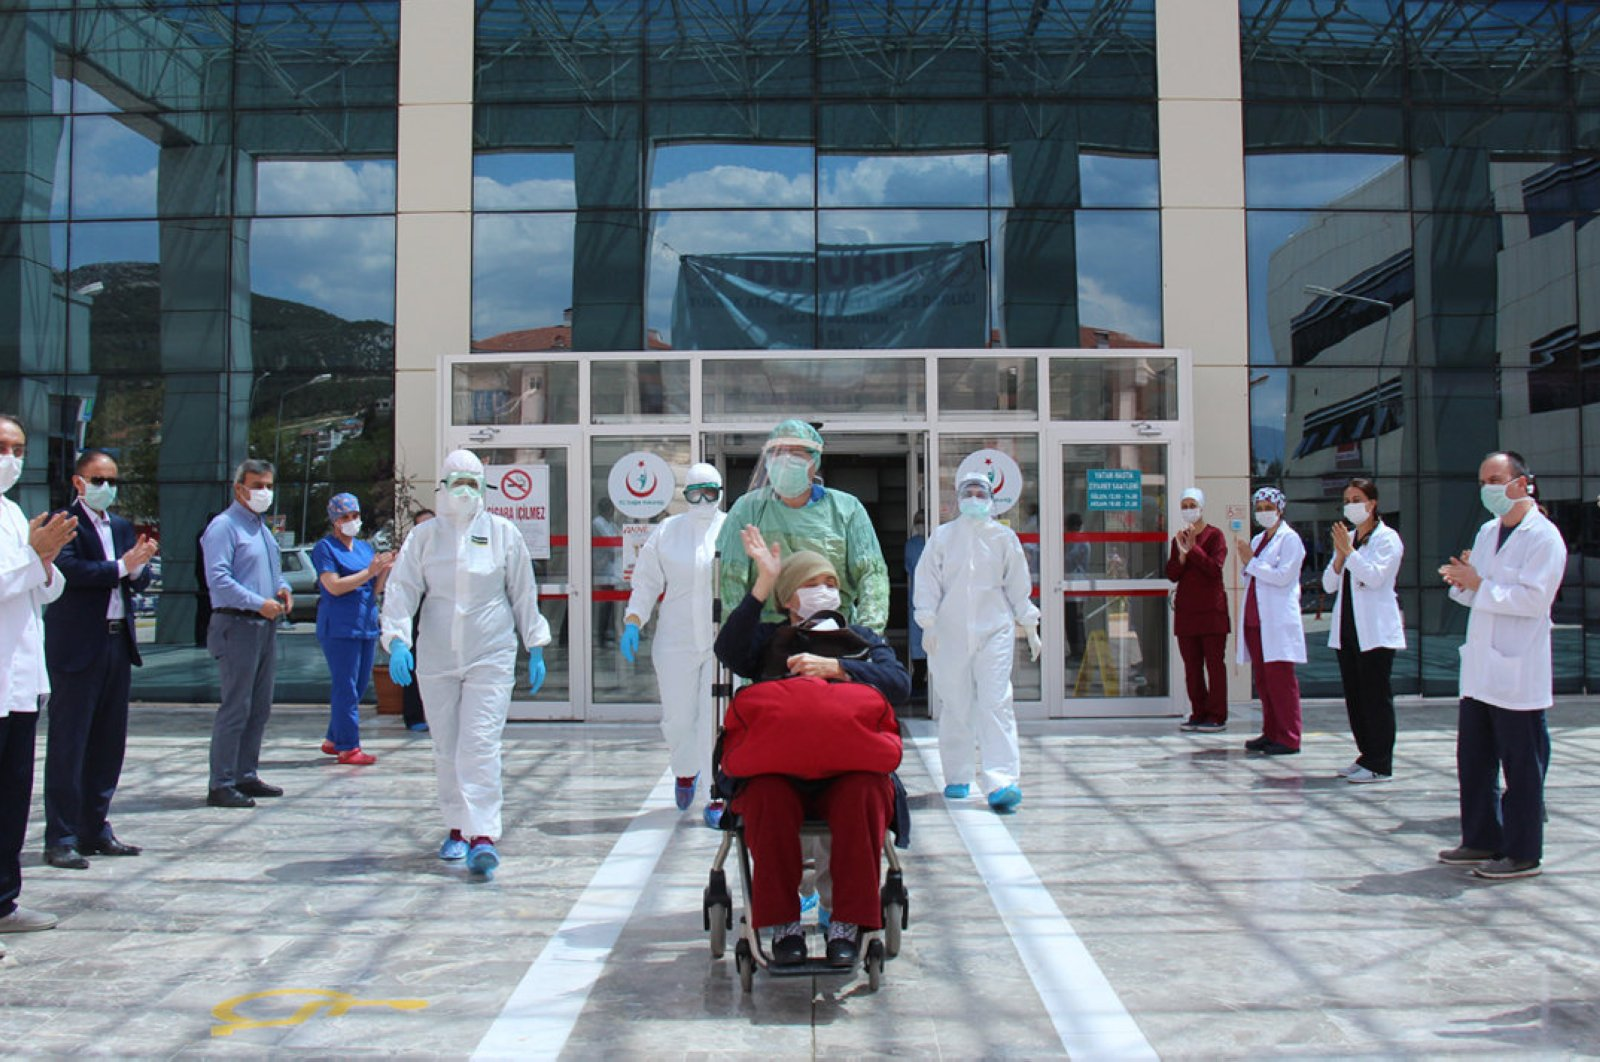 A 56-year-old patient is discharged from a hospital in the Bucak district of Burdur province, April 30, 2020. (DHA Photo)